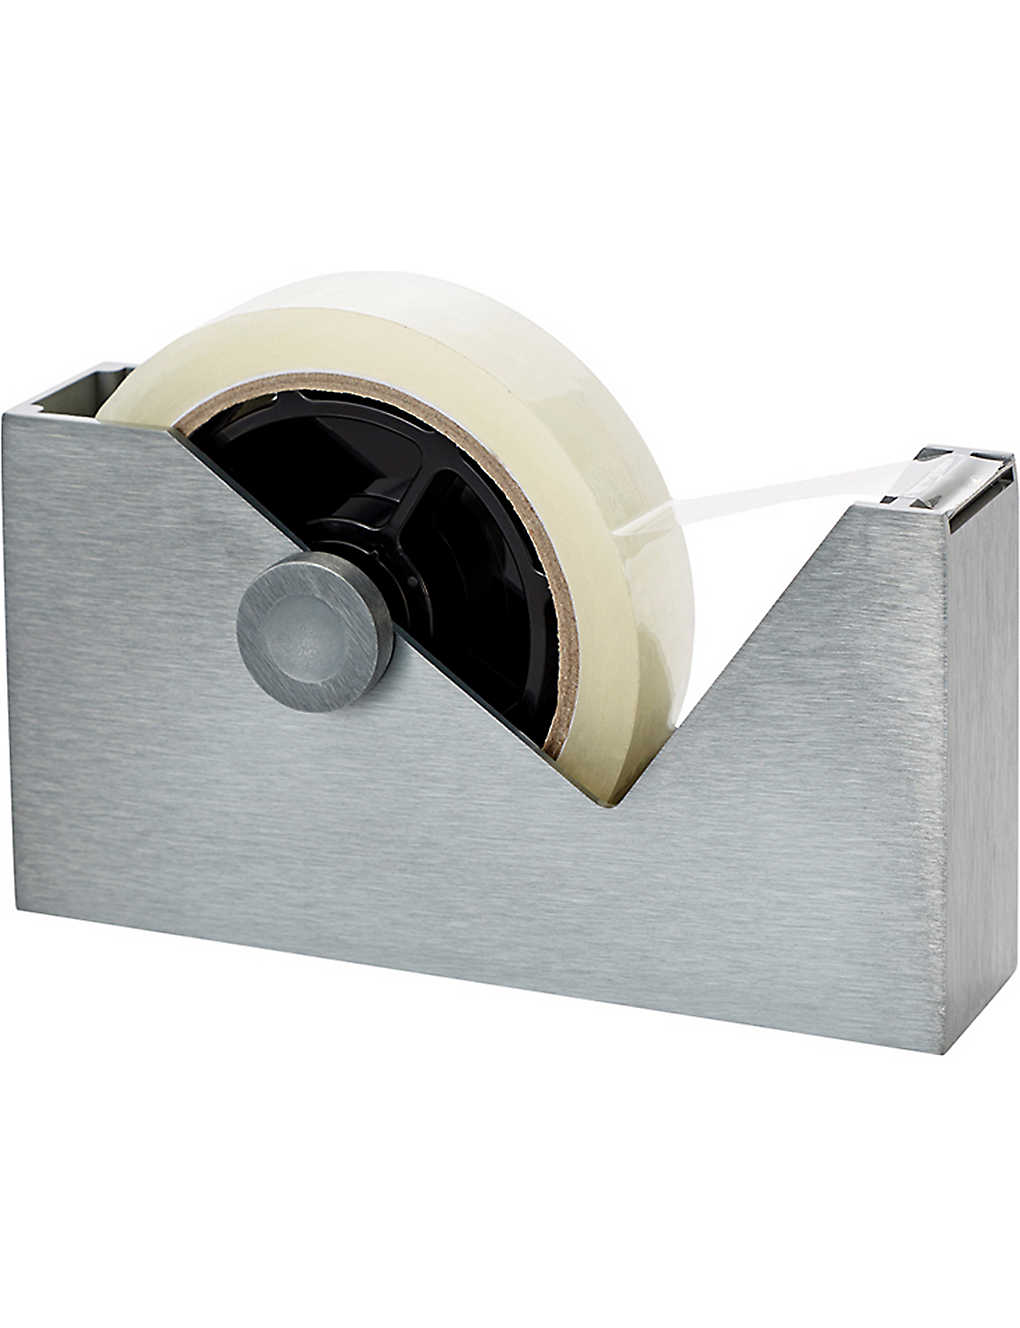 TOM DIXON - Cube tape dispenser | Selfridges.com